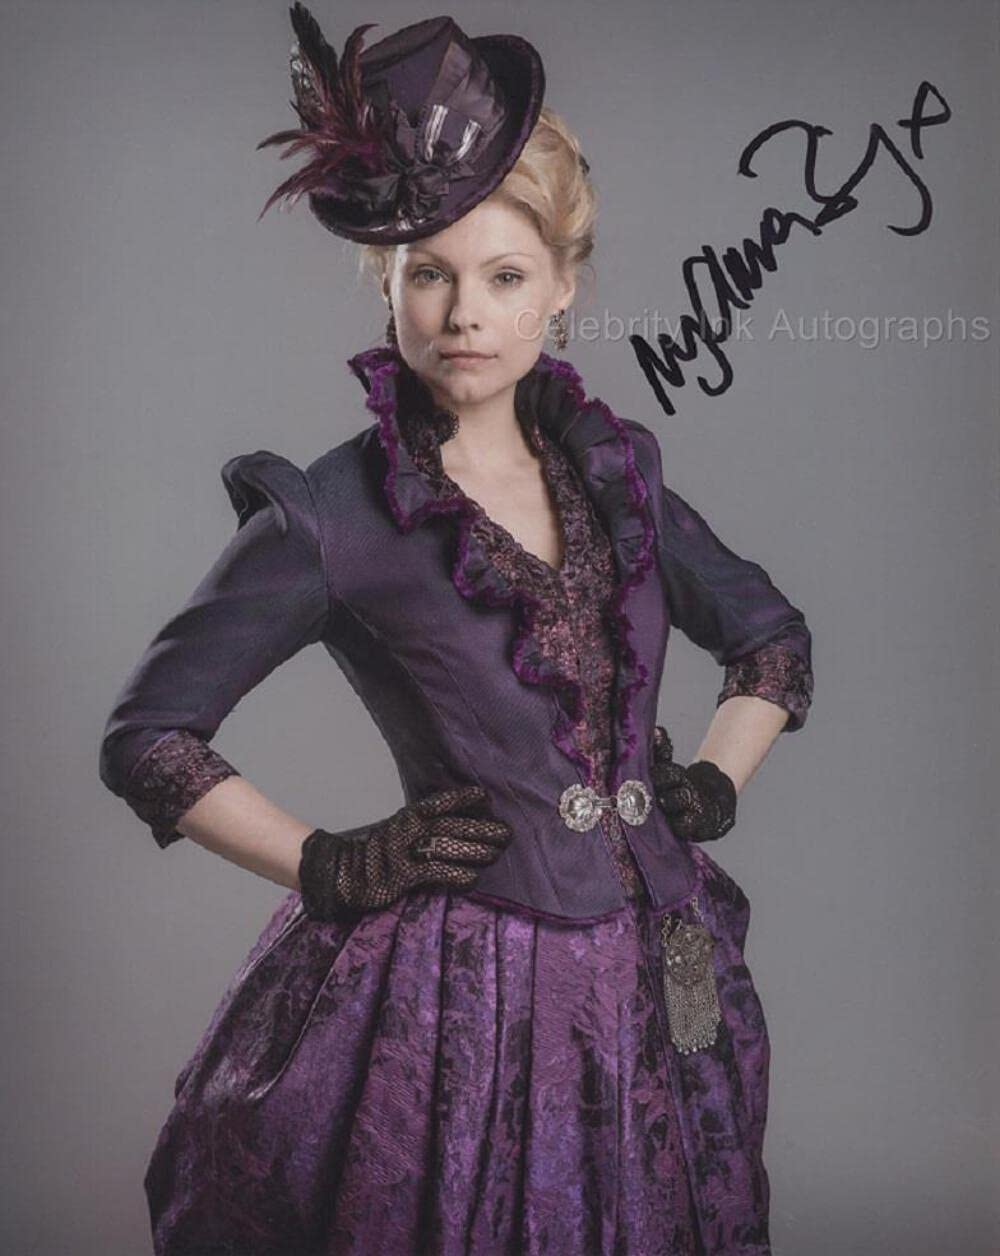 MYANNA BURING as Long Susan Street AUTOGRAPH - Ripper GENUINE Cheap super special price Bombing new work